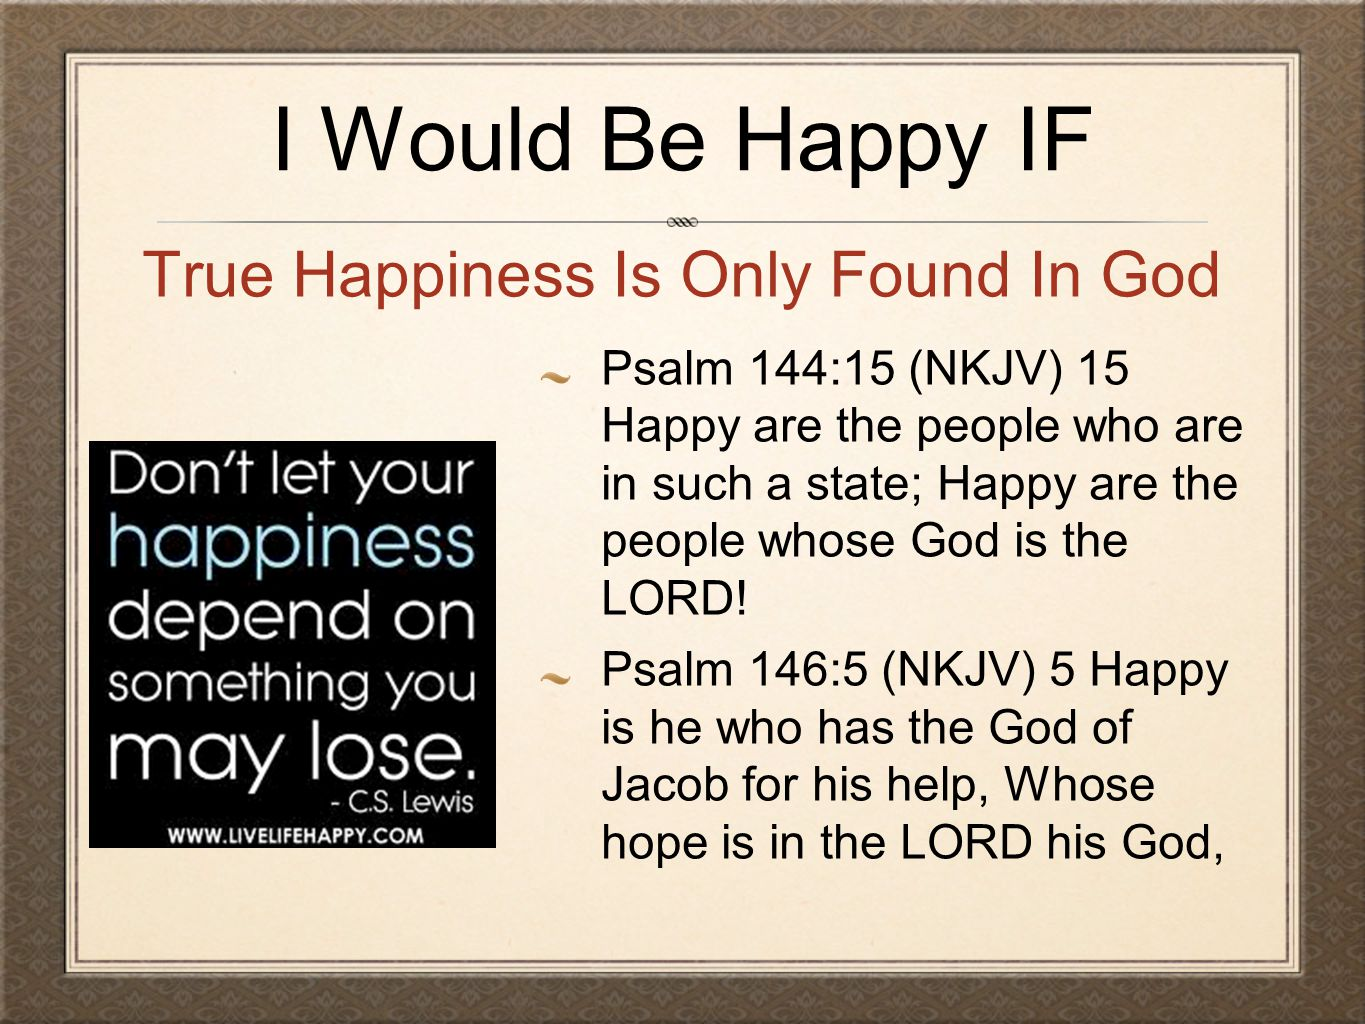 True Happiness Is Only Found In God